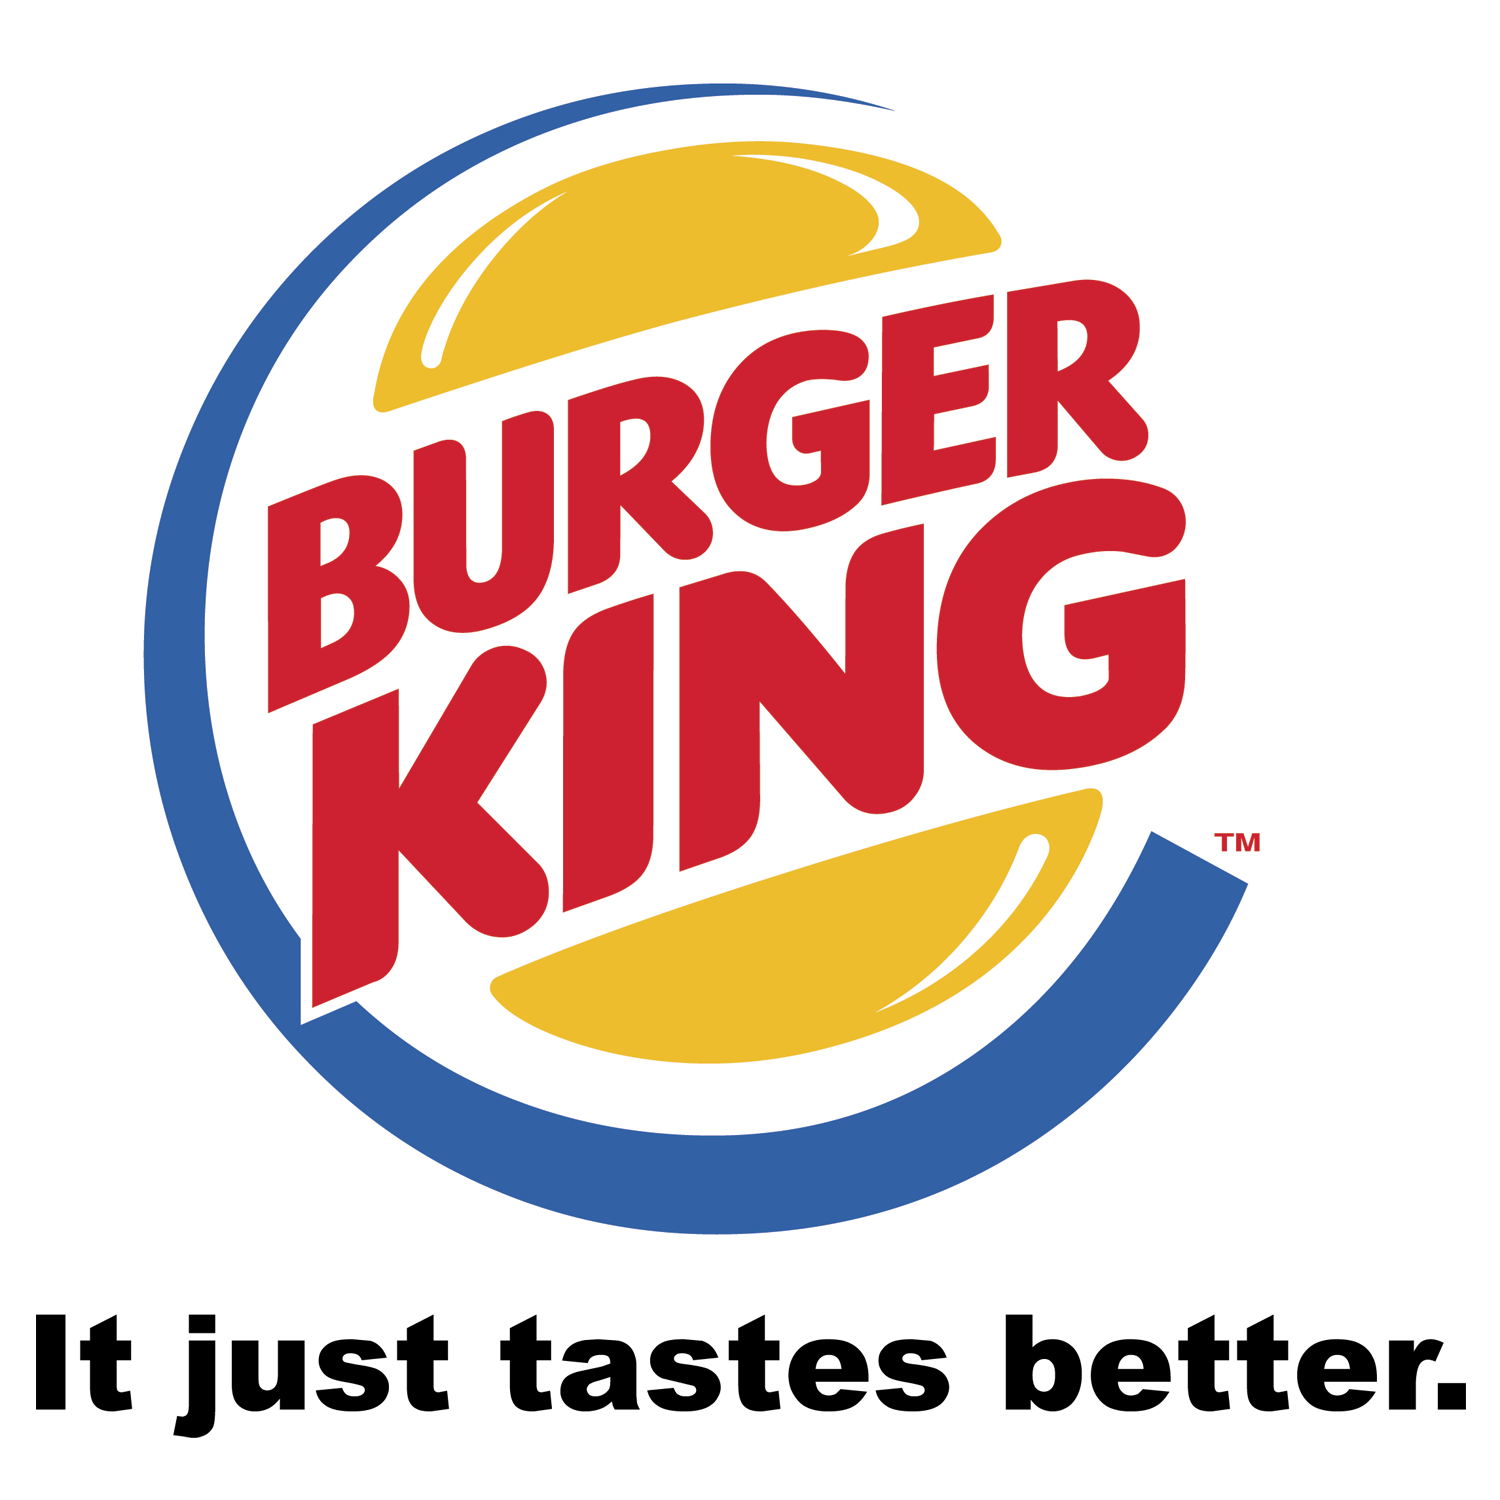 You Can Download Burger King Logo Design Below In Vector And PNG Format  With Transparent Background. - Burger King Logo PNG